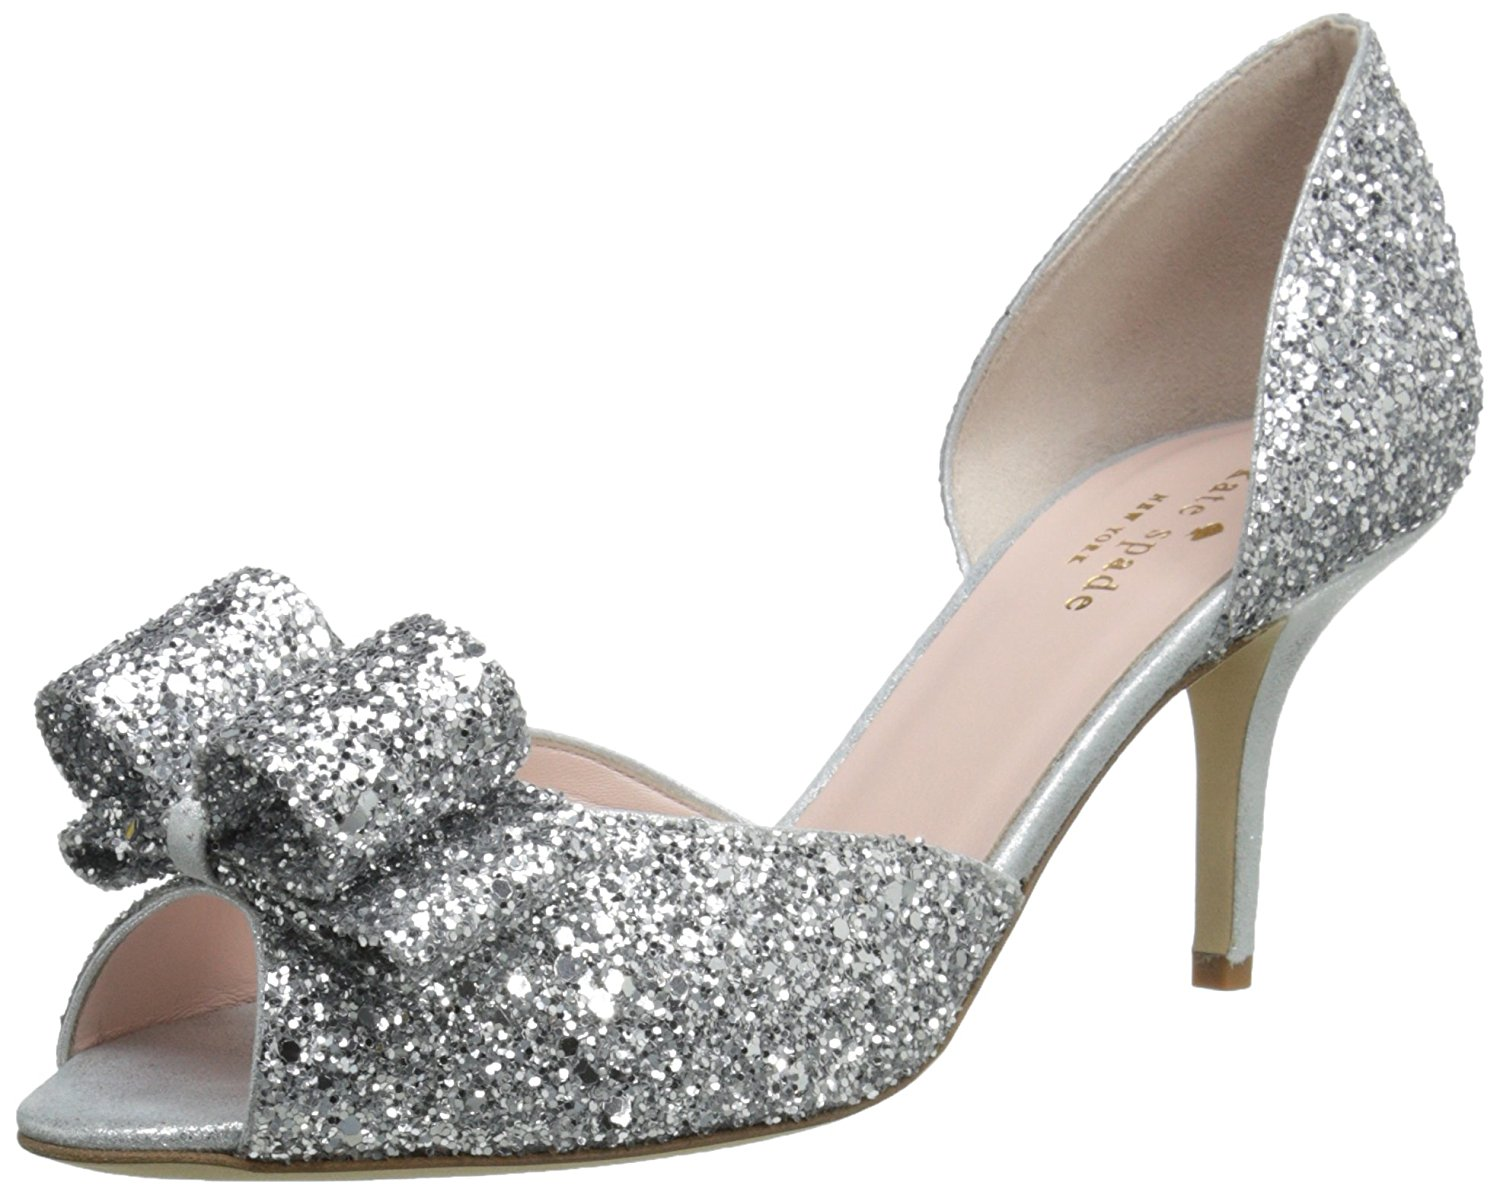 6aeafd7c975c Kate Spade New York Womens Sela Peep Toe Classic Pumps